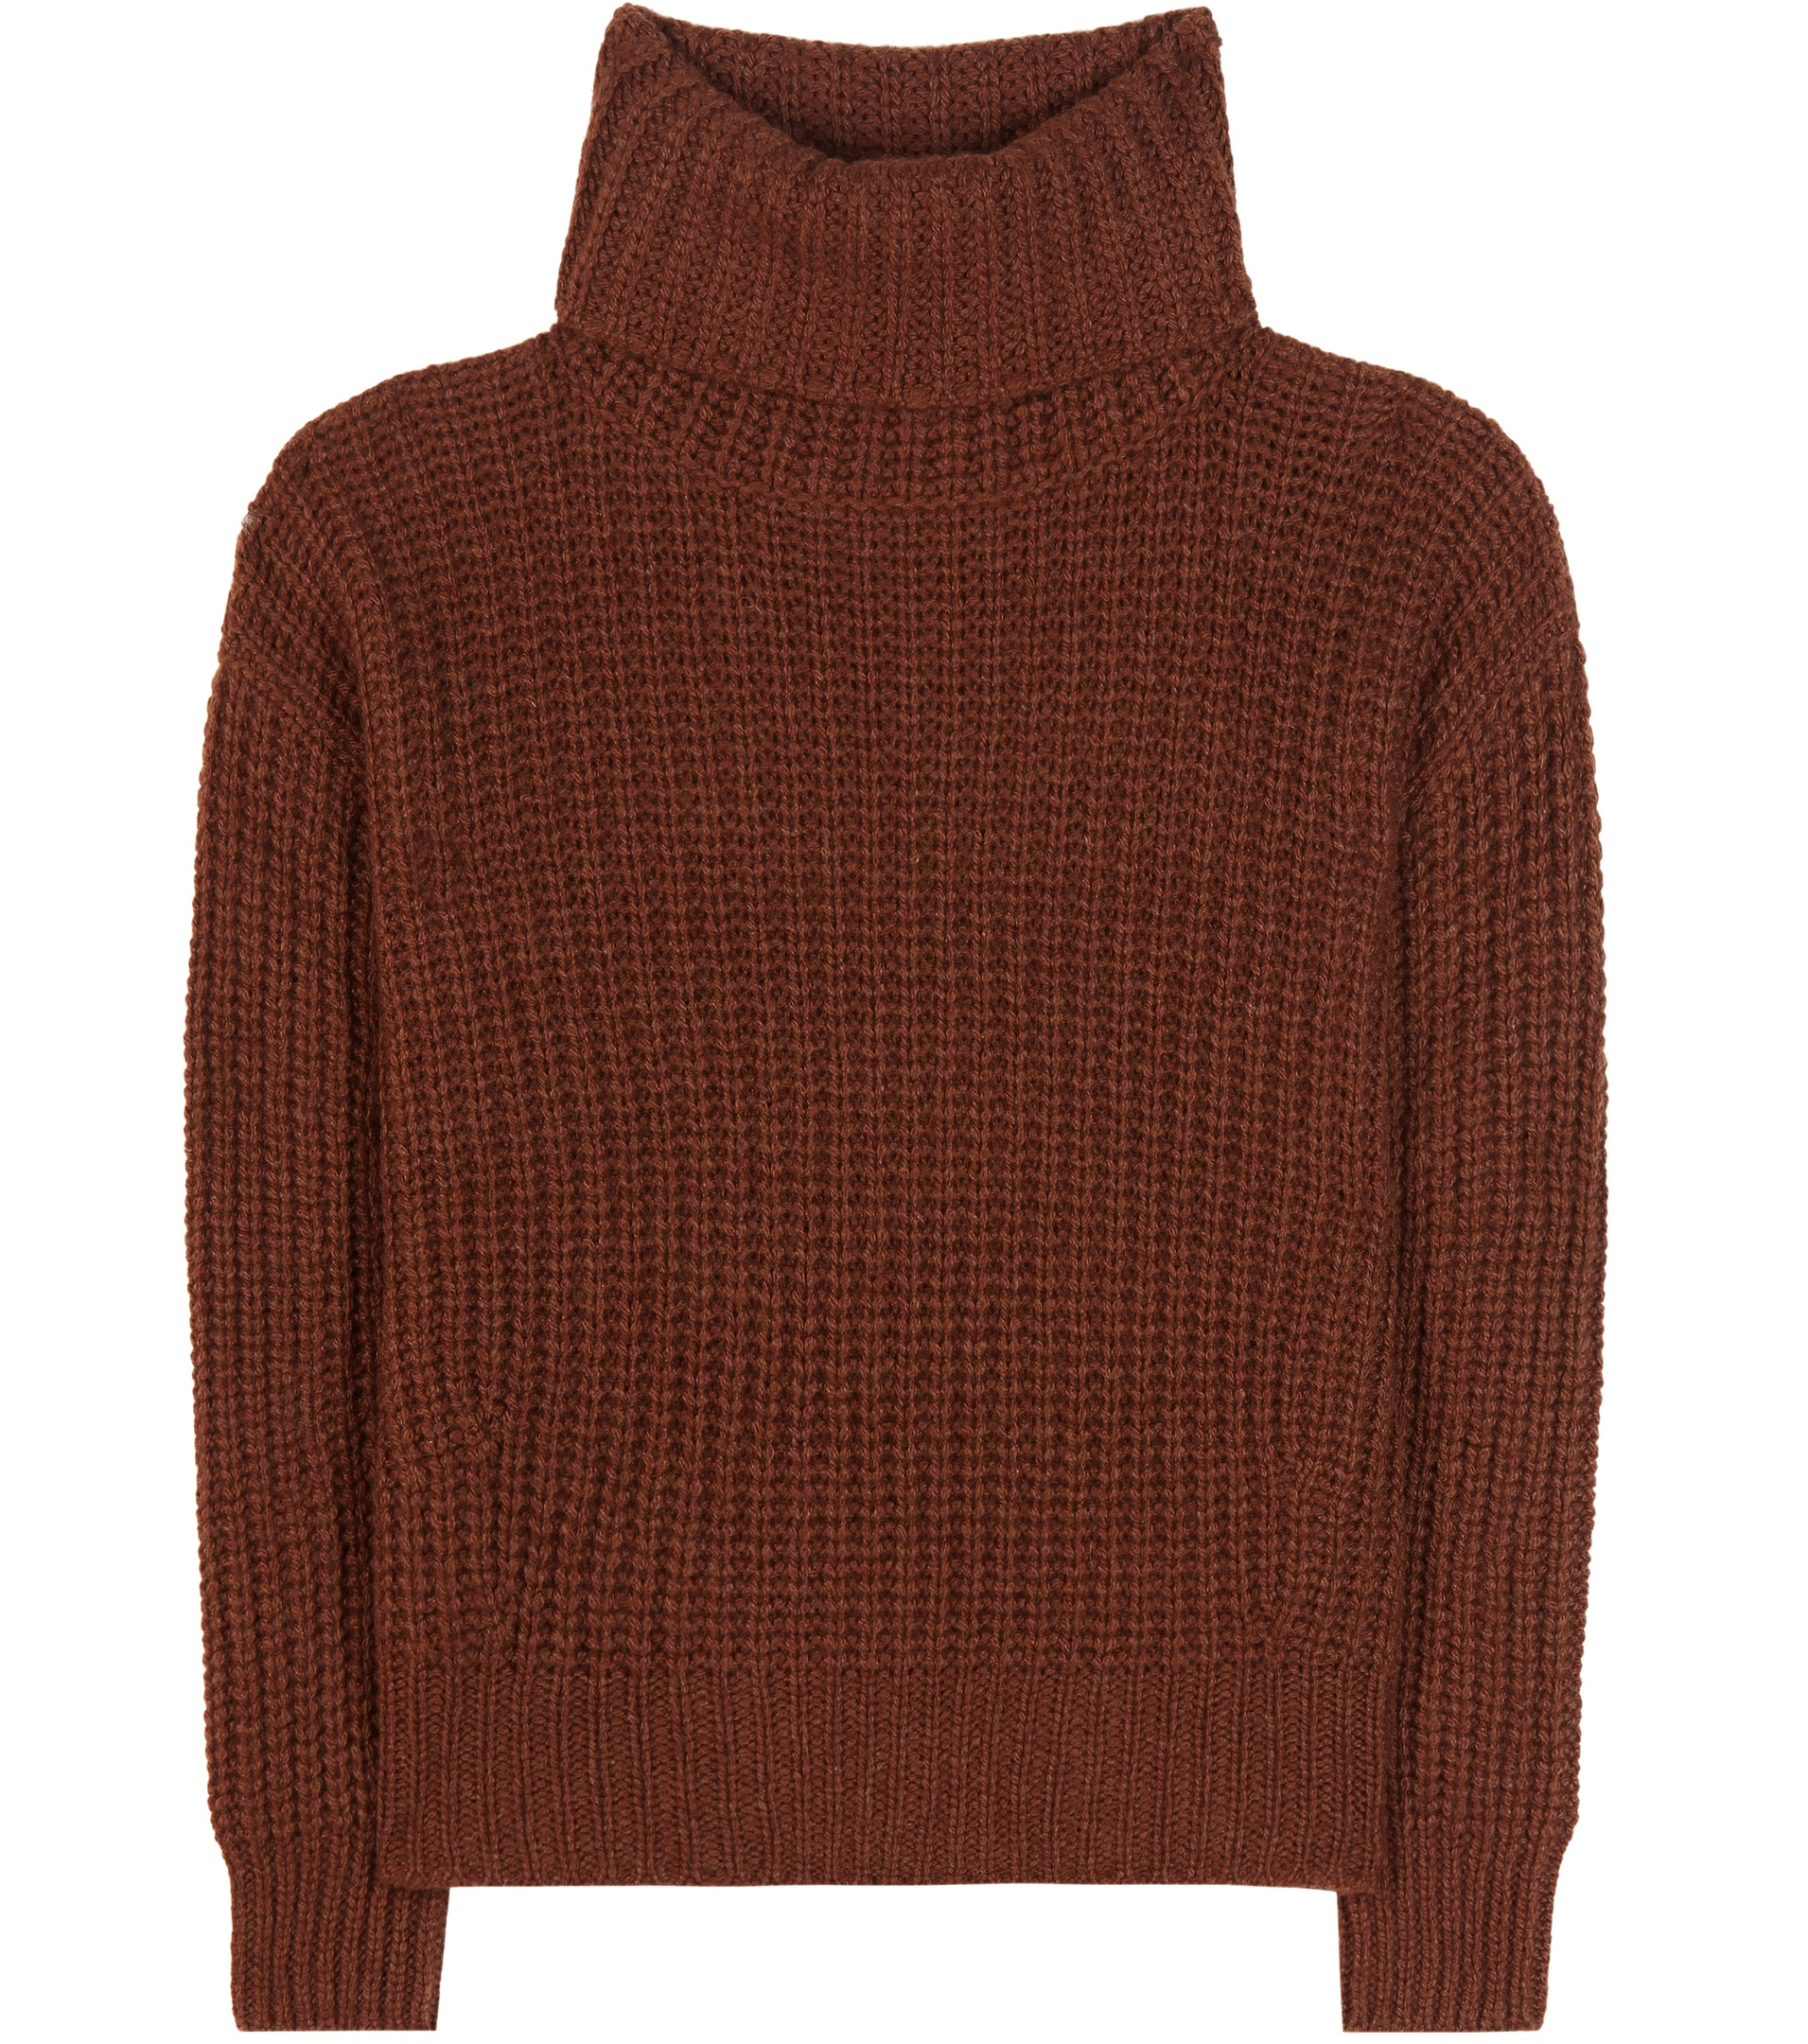 Find Brown men's turtleneck sweaters at ShopStyle. Shop the latest collection of Brown men's turtleneck sweaters from the most popular stores - all in.